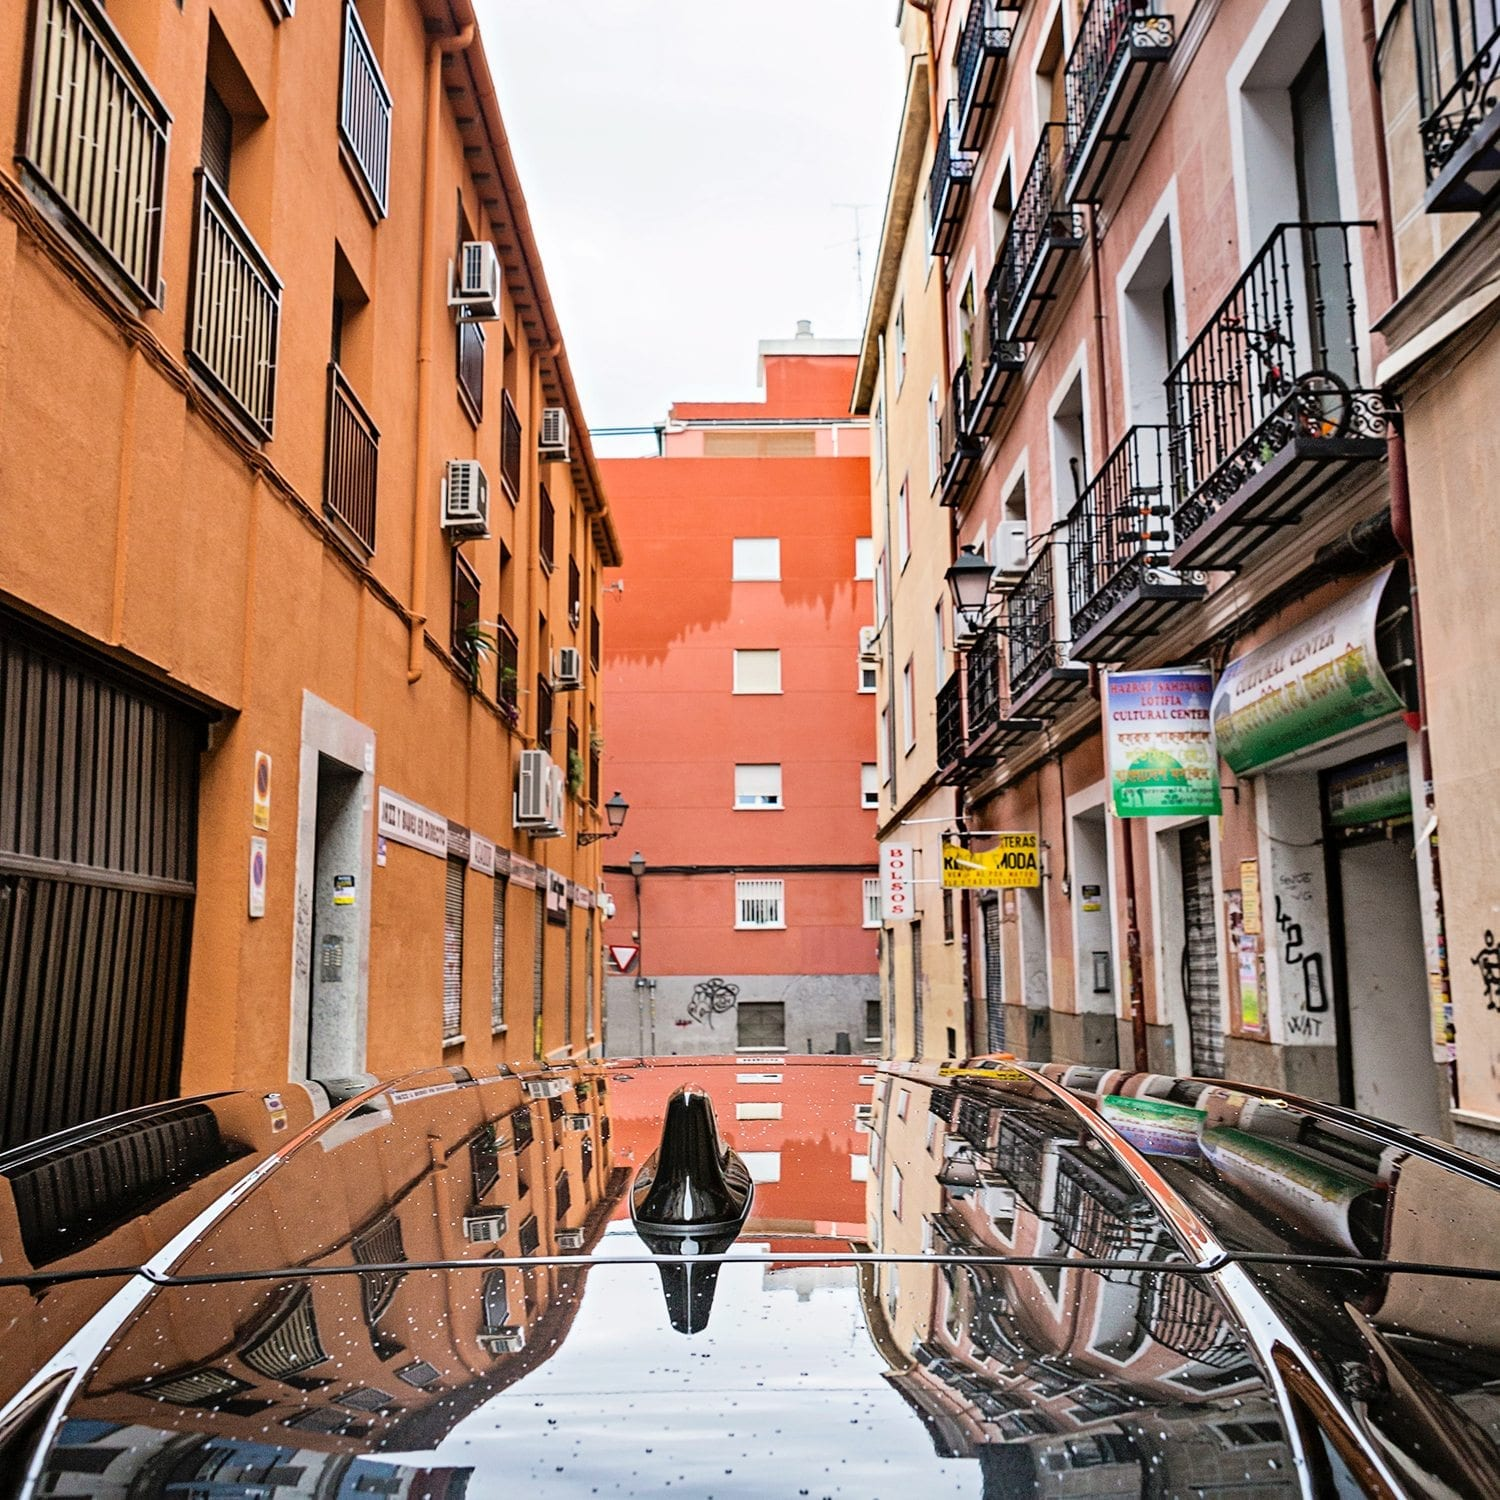 Urban reflections Madrid Toyota C-HR Toyota Motor Europe hybrid car photography picturelyspoken SeeMyCity Marianne Hope